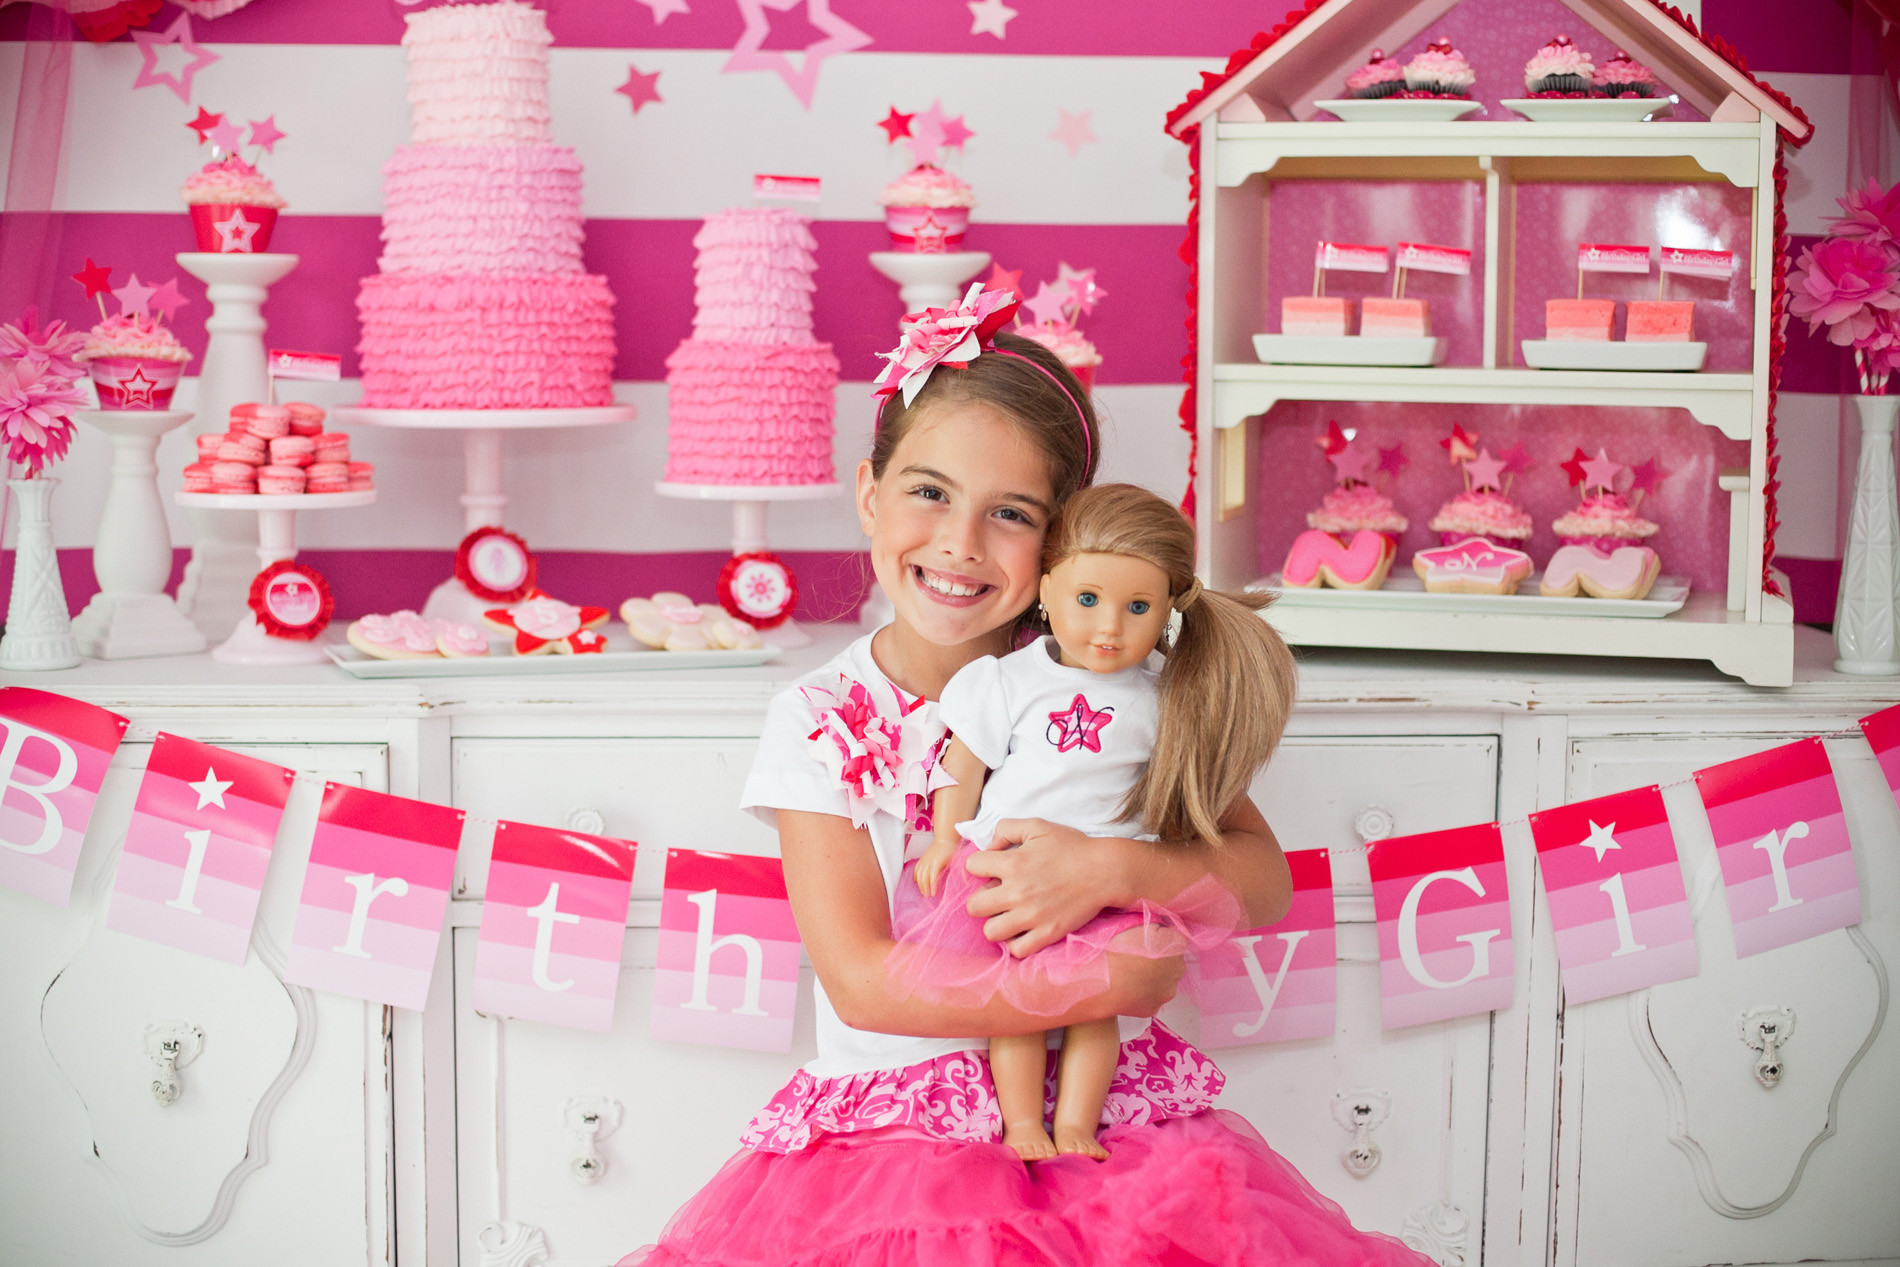 Best ideas about Girls Birthday Party . Save or Pin Ruff Draft DIY Bubble Wand American Girl Style Anders Now.